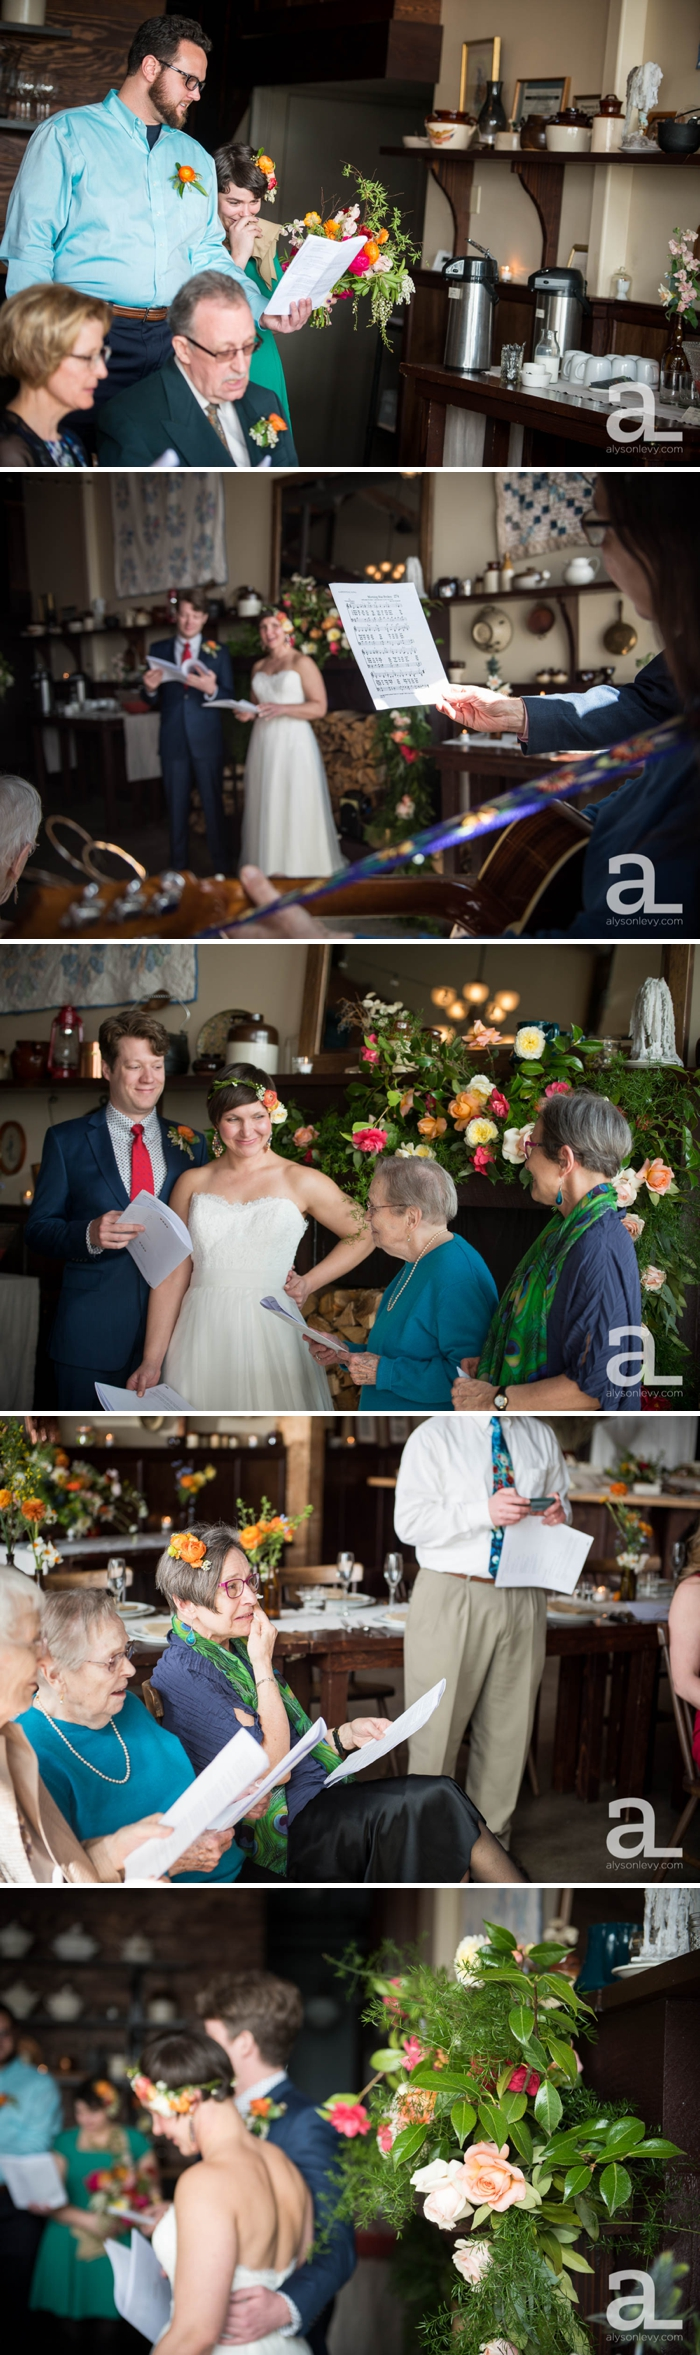 Portland-Elder-Hall-Wedding-Photography_0015.jpg